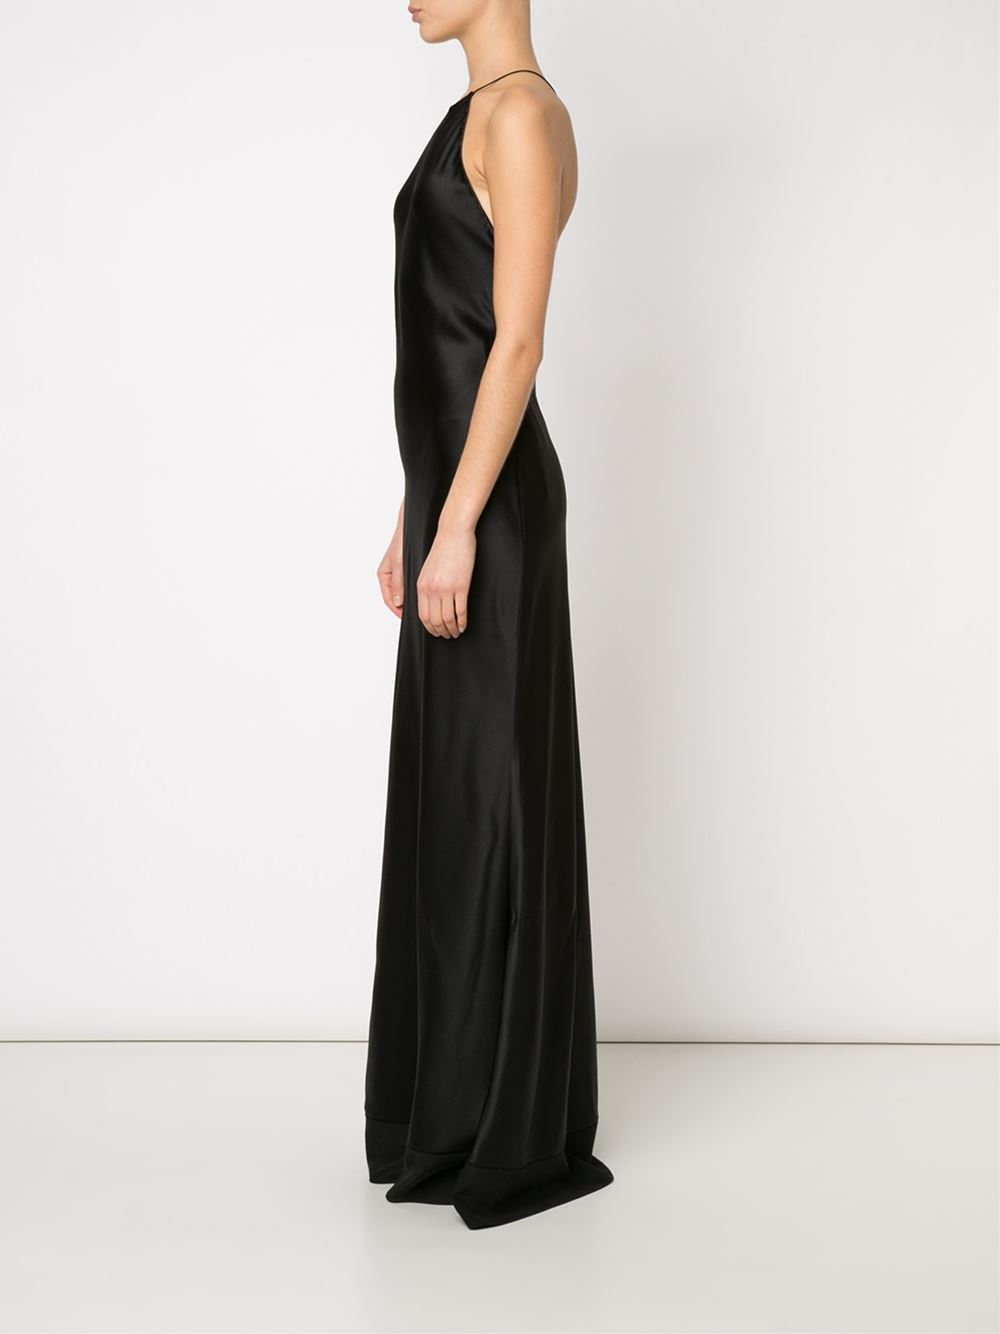 Calvin Klein Fawn Evening Dress In Black Lyst